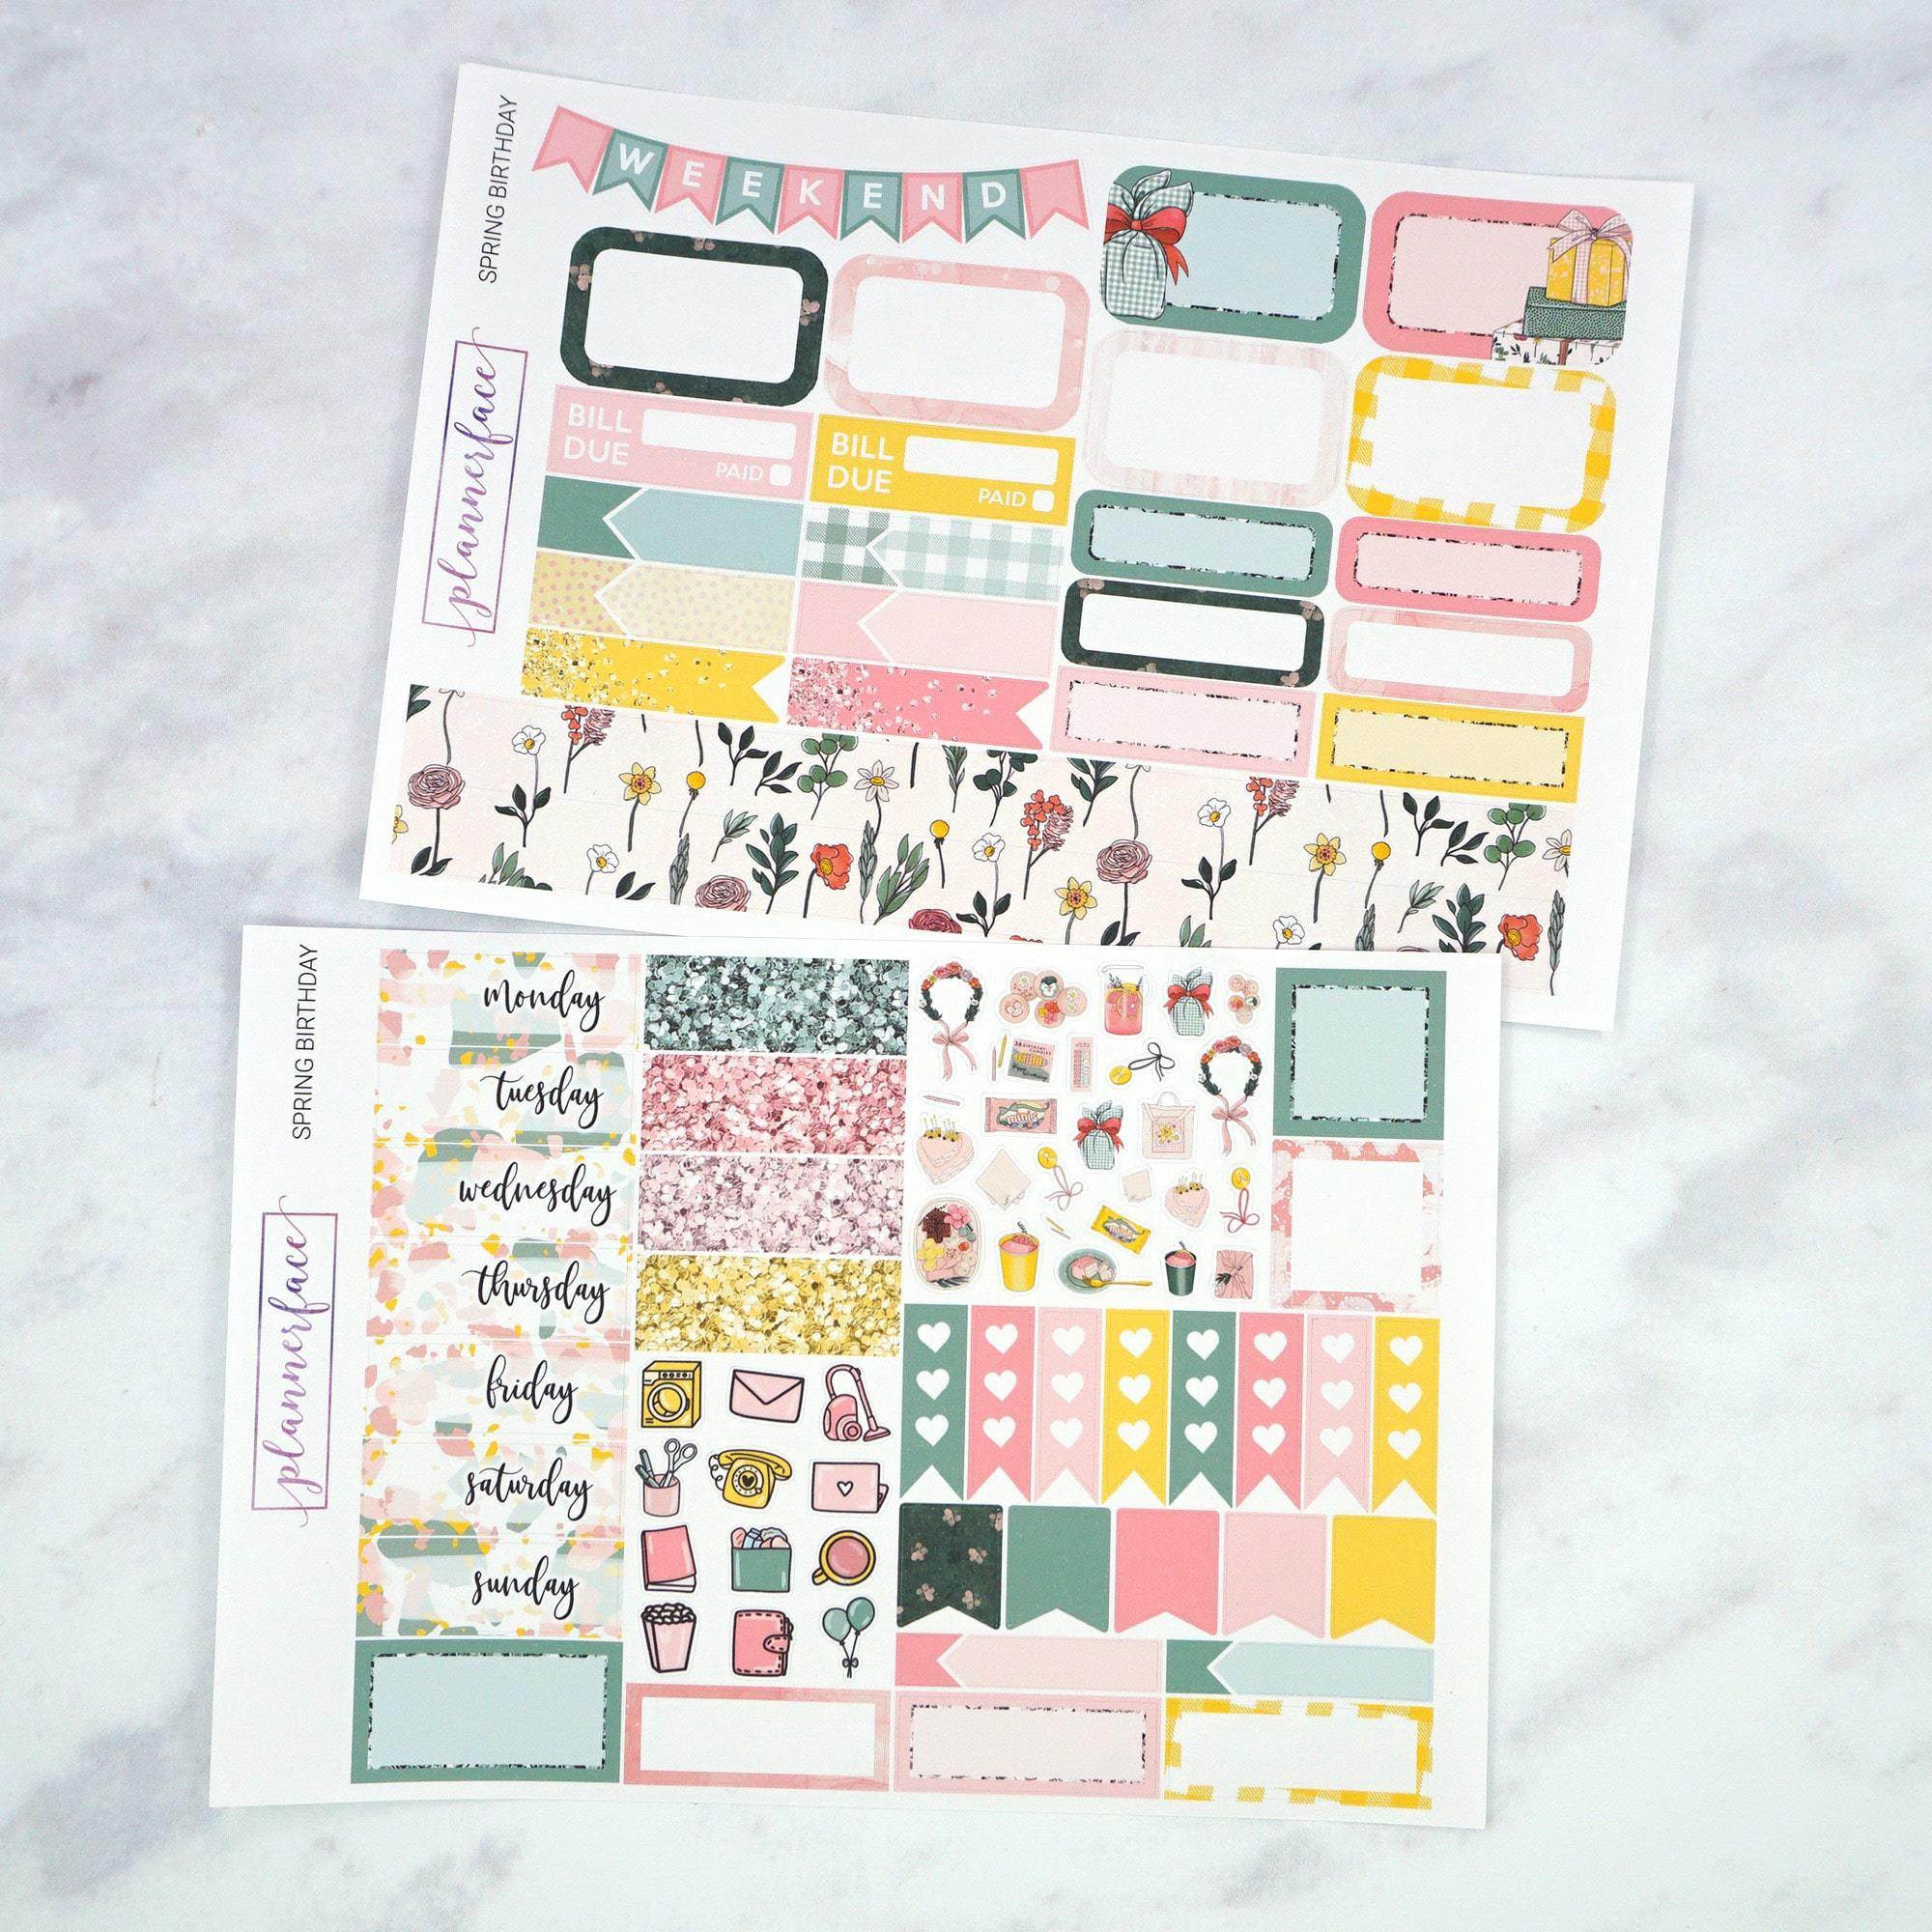 Plannerface Spring Birthday Mini Kit Planner Stickers